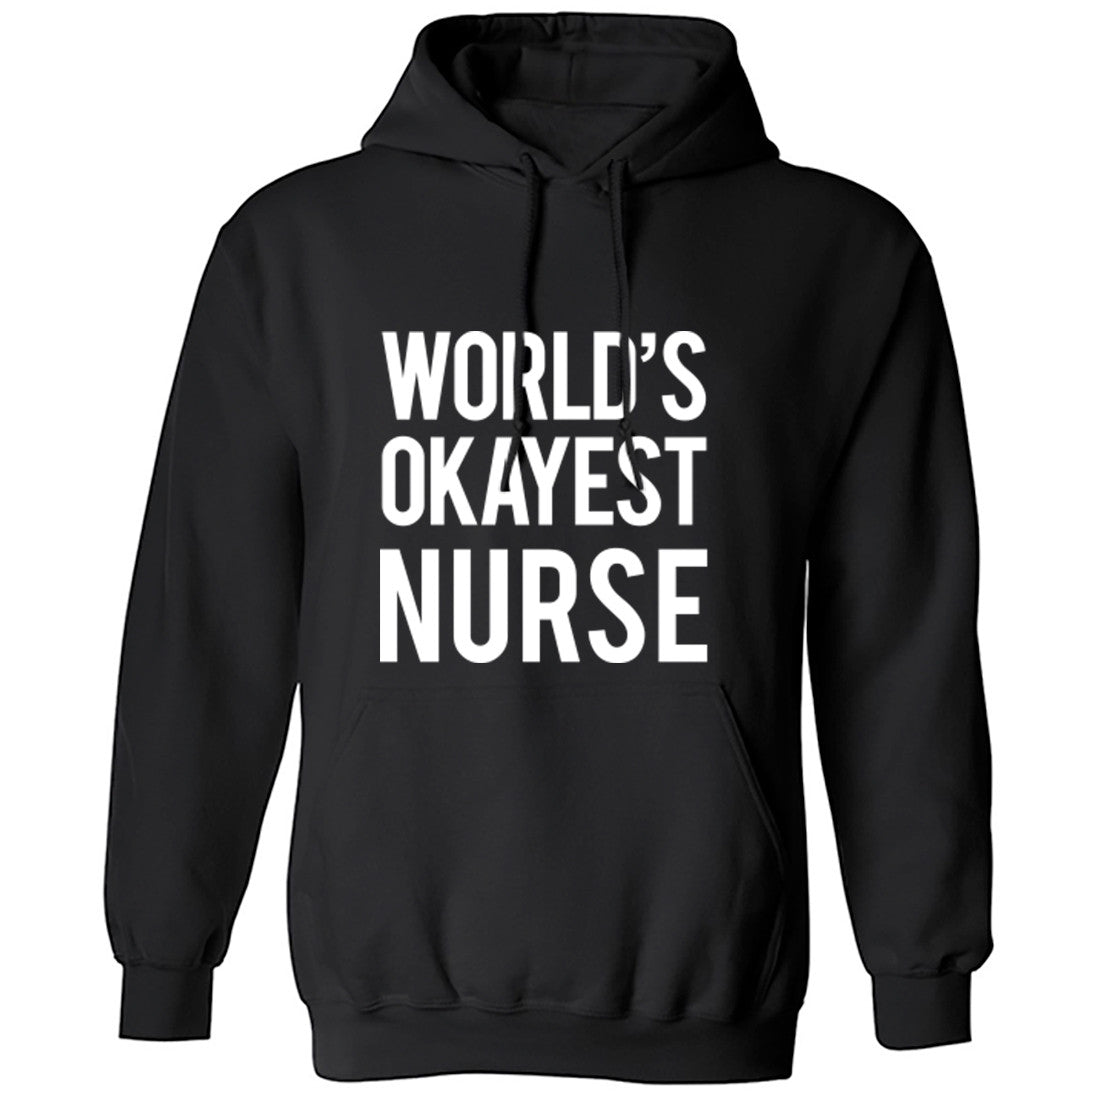 Worlds Okayest Nurse Unisex Hoodie K0484 - Illustrated Identity Ltd.